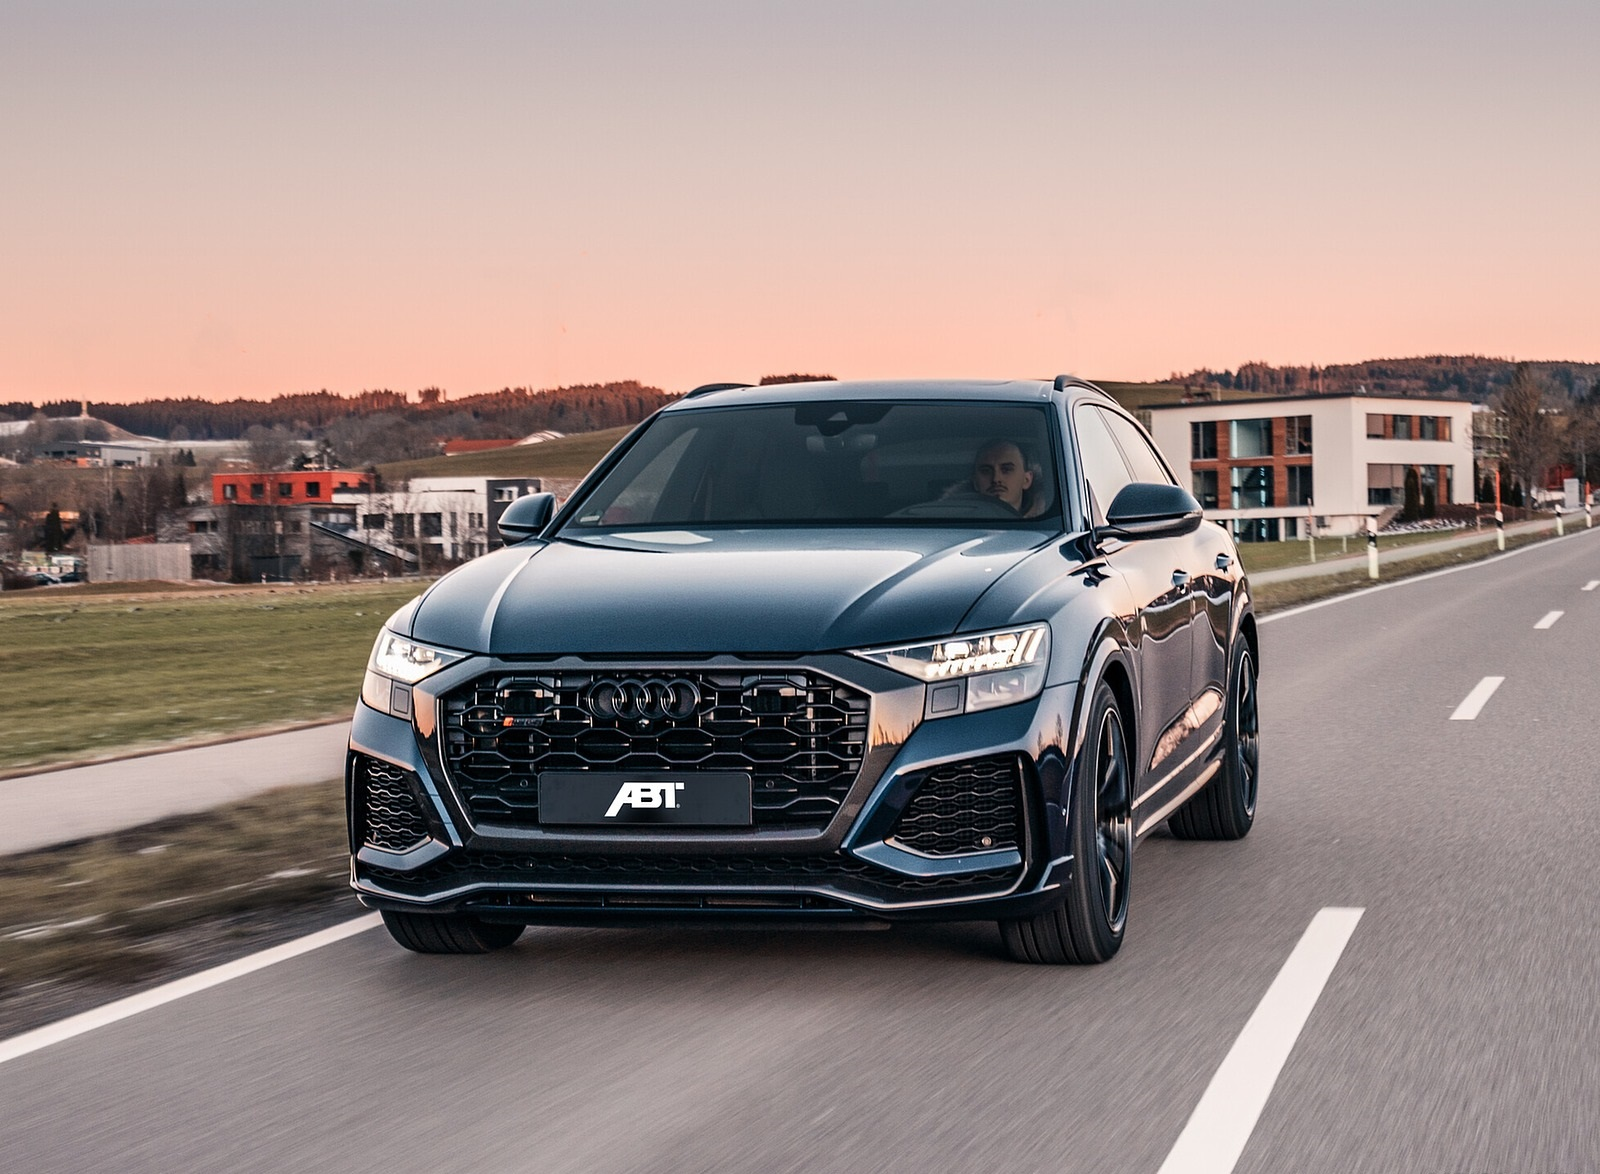 2020 Abt Audi Rs Q8 Wallpapers 9 Hd Images Newcarcars